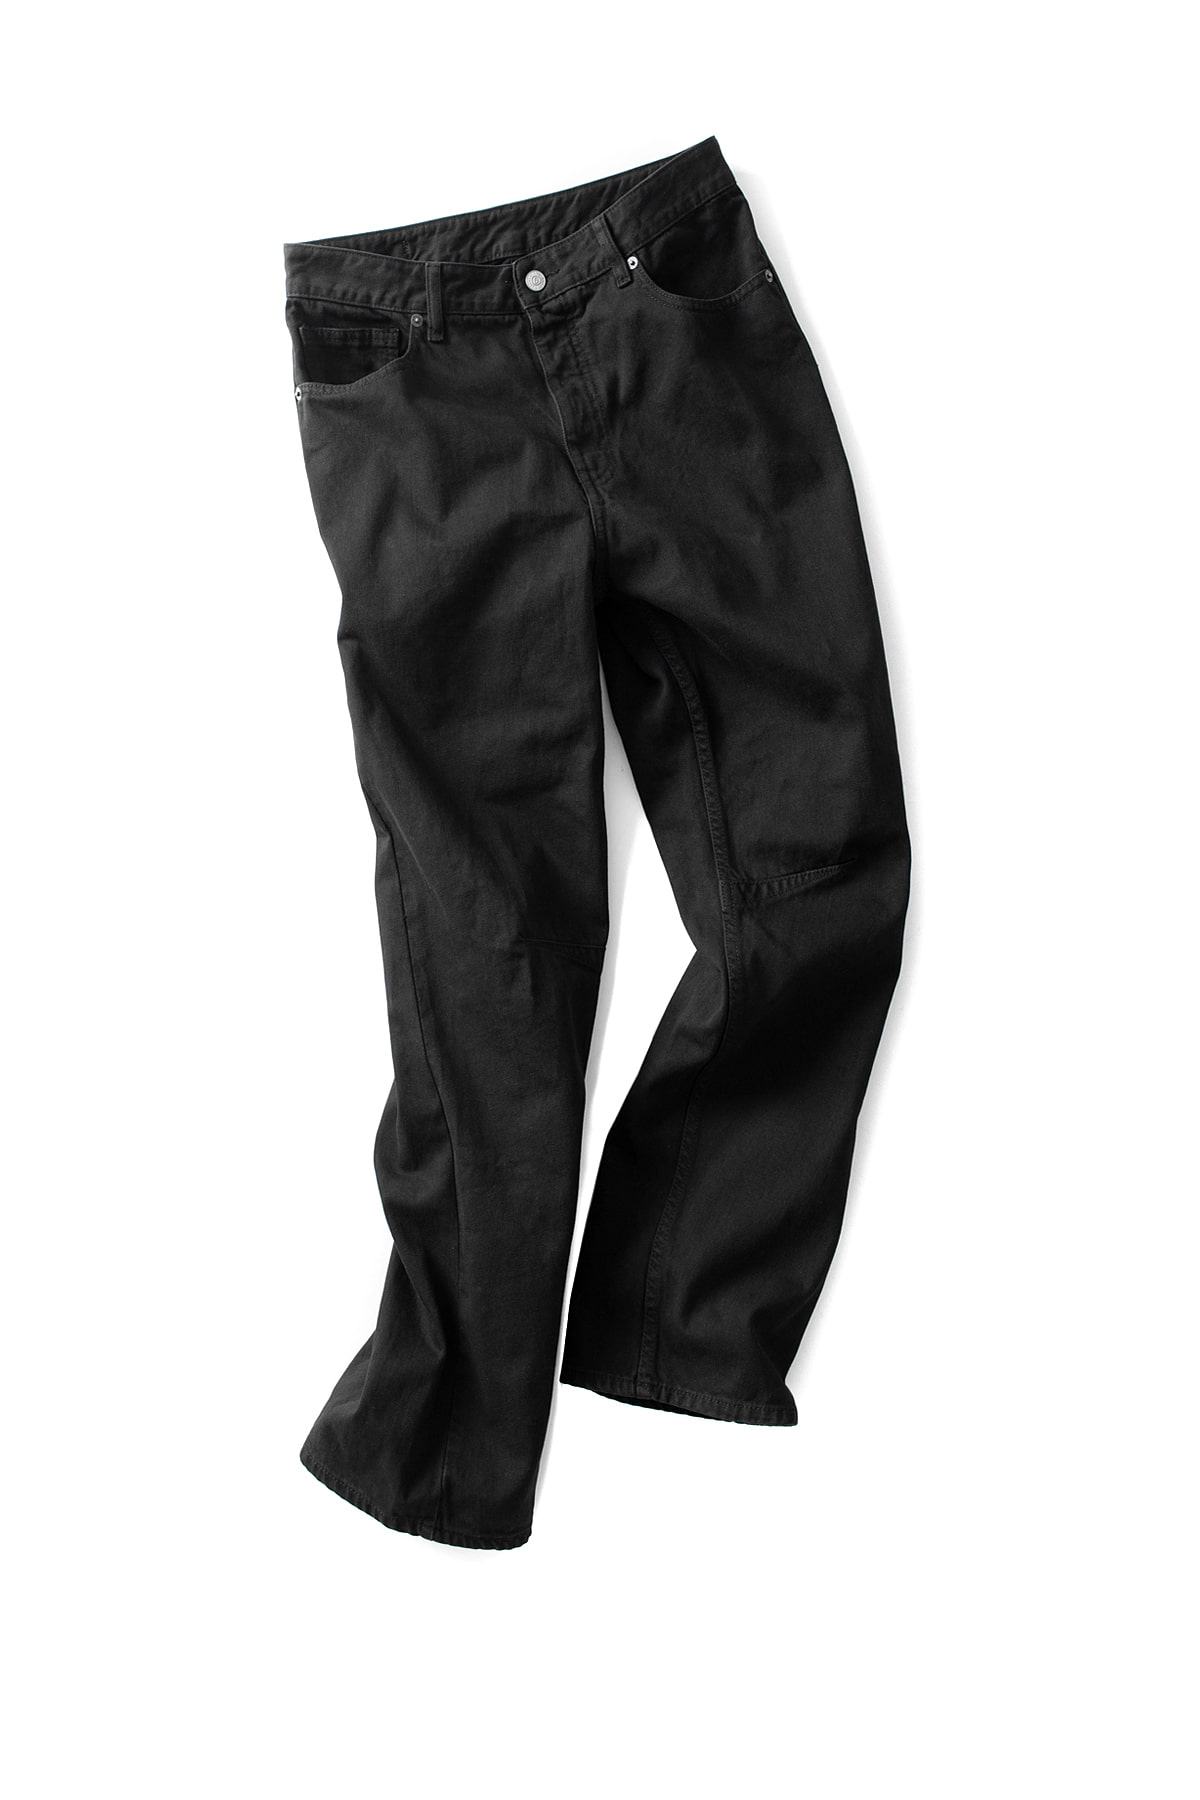 MM6 Maison Margiela : Black Jeans (Black)